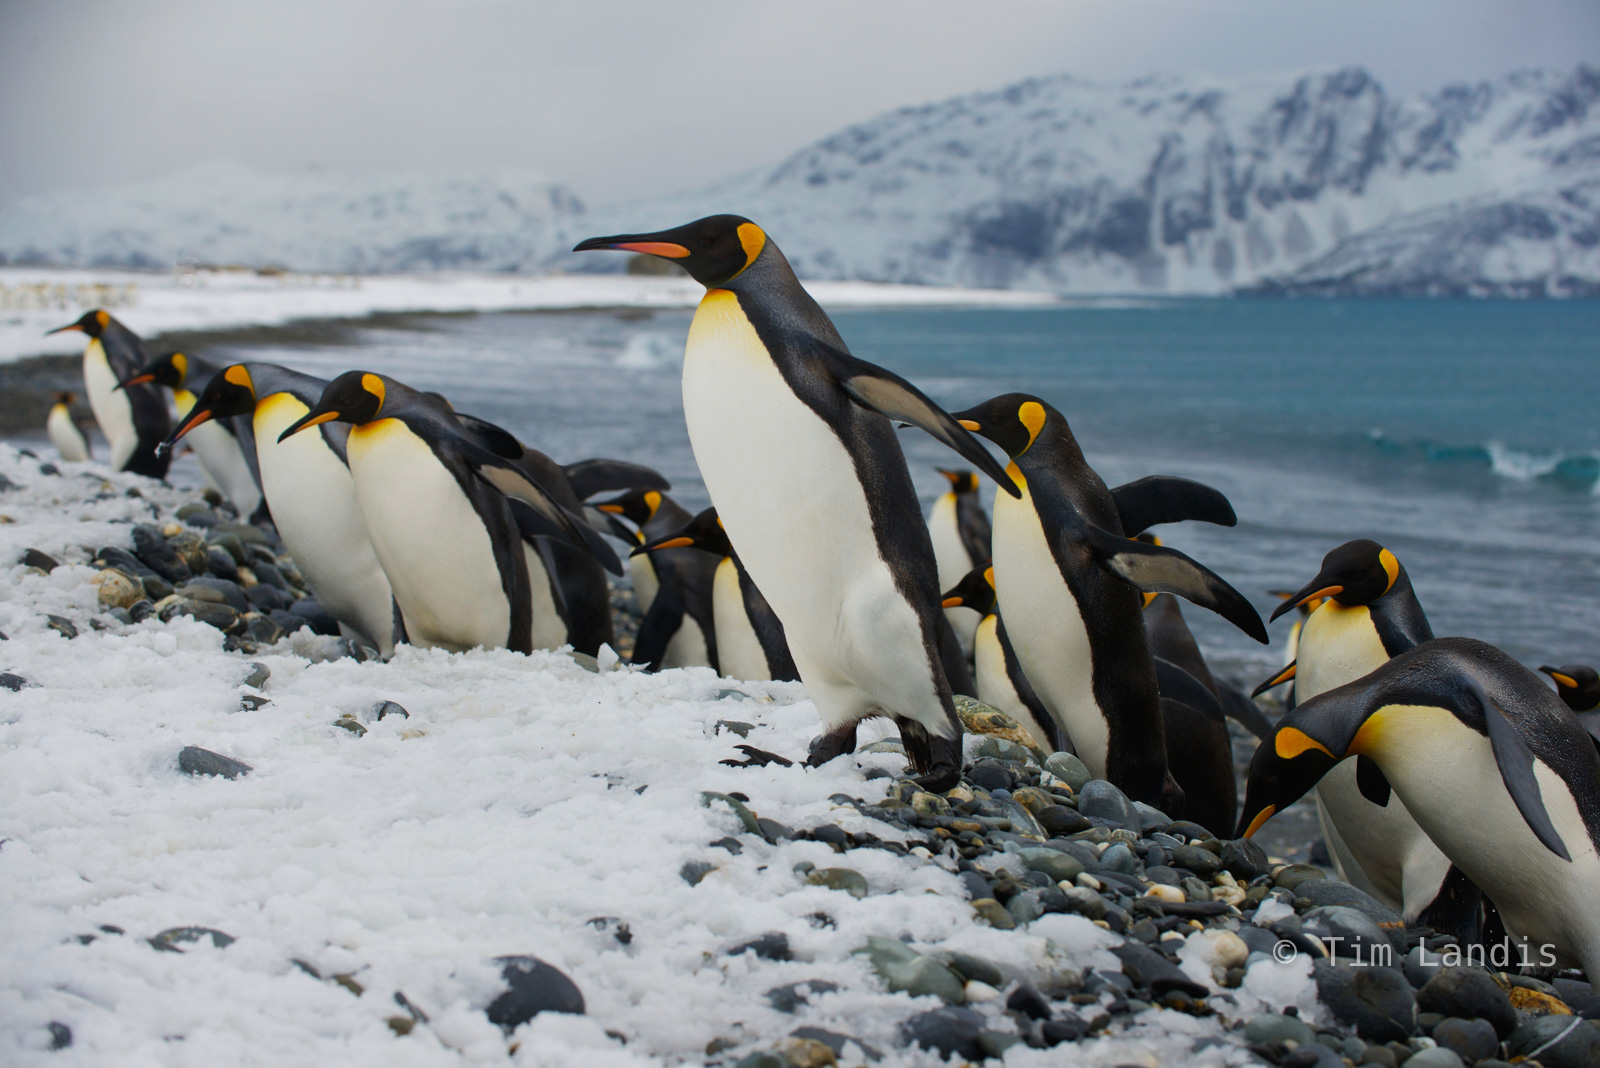 King Penuins, King penguins, coming ashore, leading the charge, photo